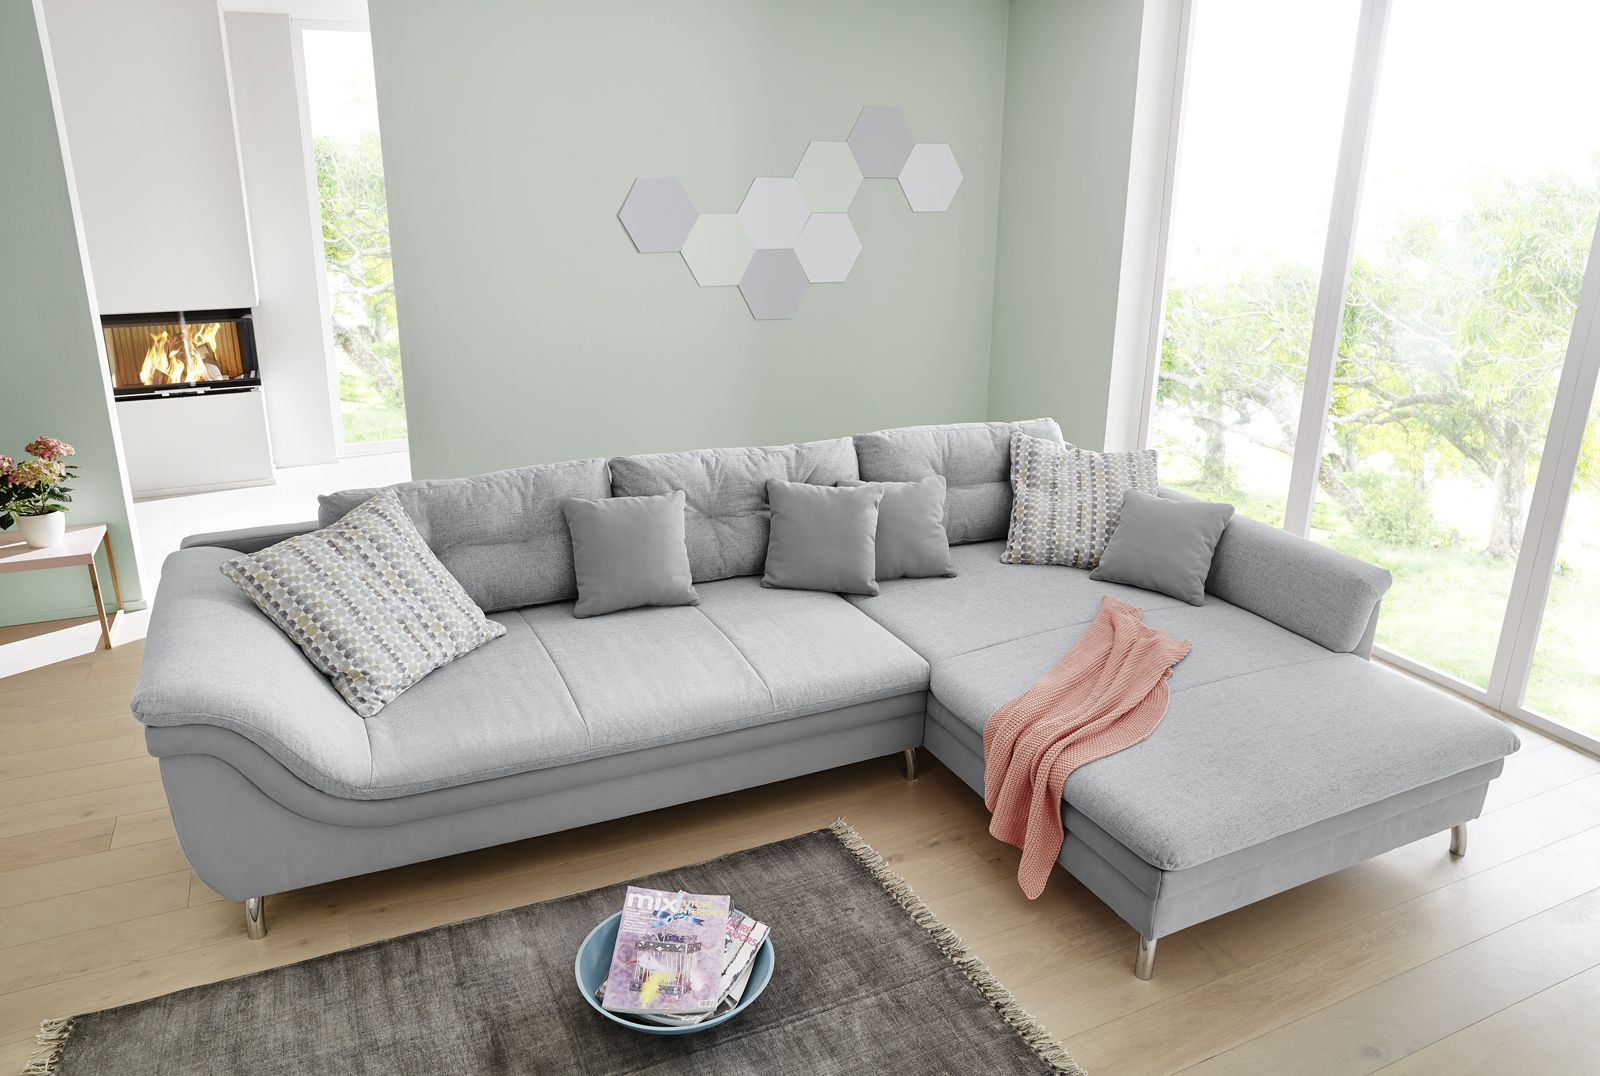 Montreal Zweisitzer Sofa L Billige Sofas Beautiful Interiors Angles